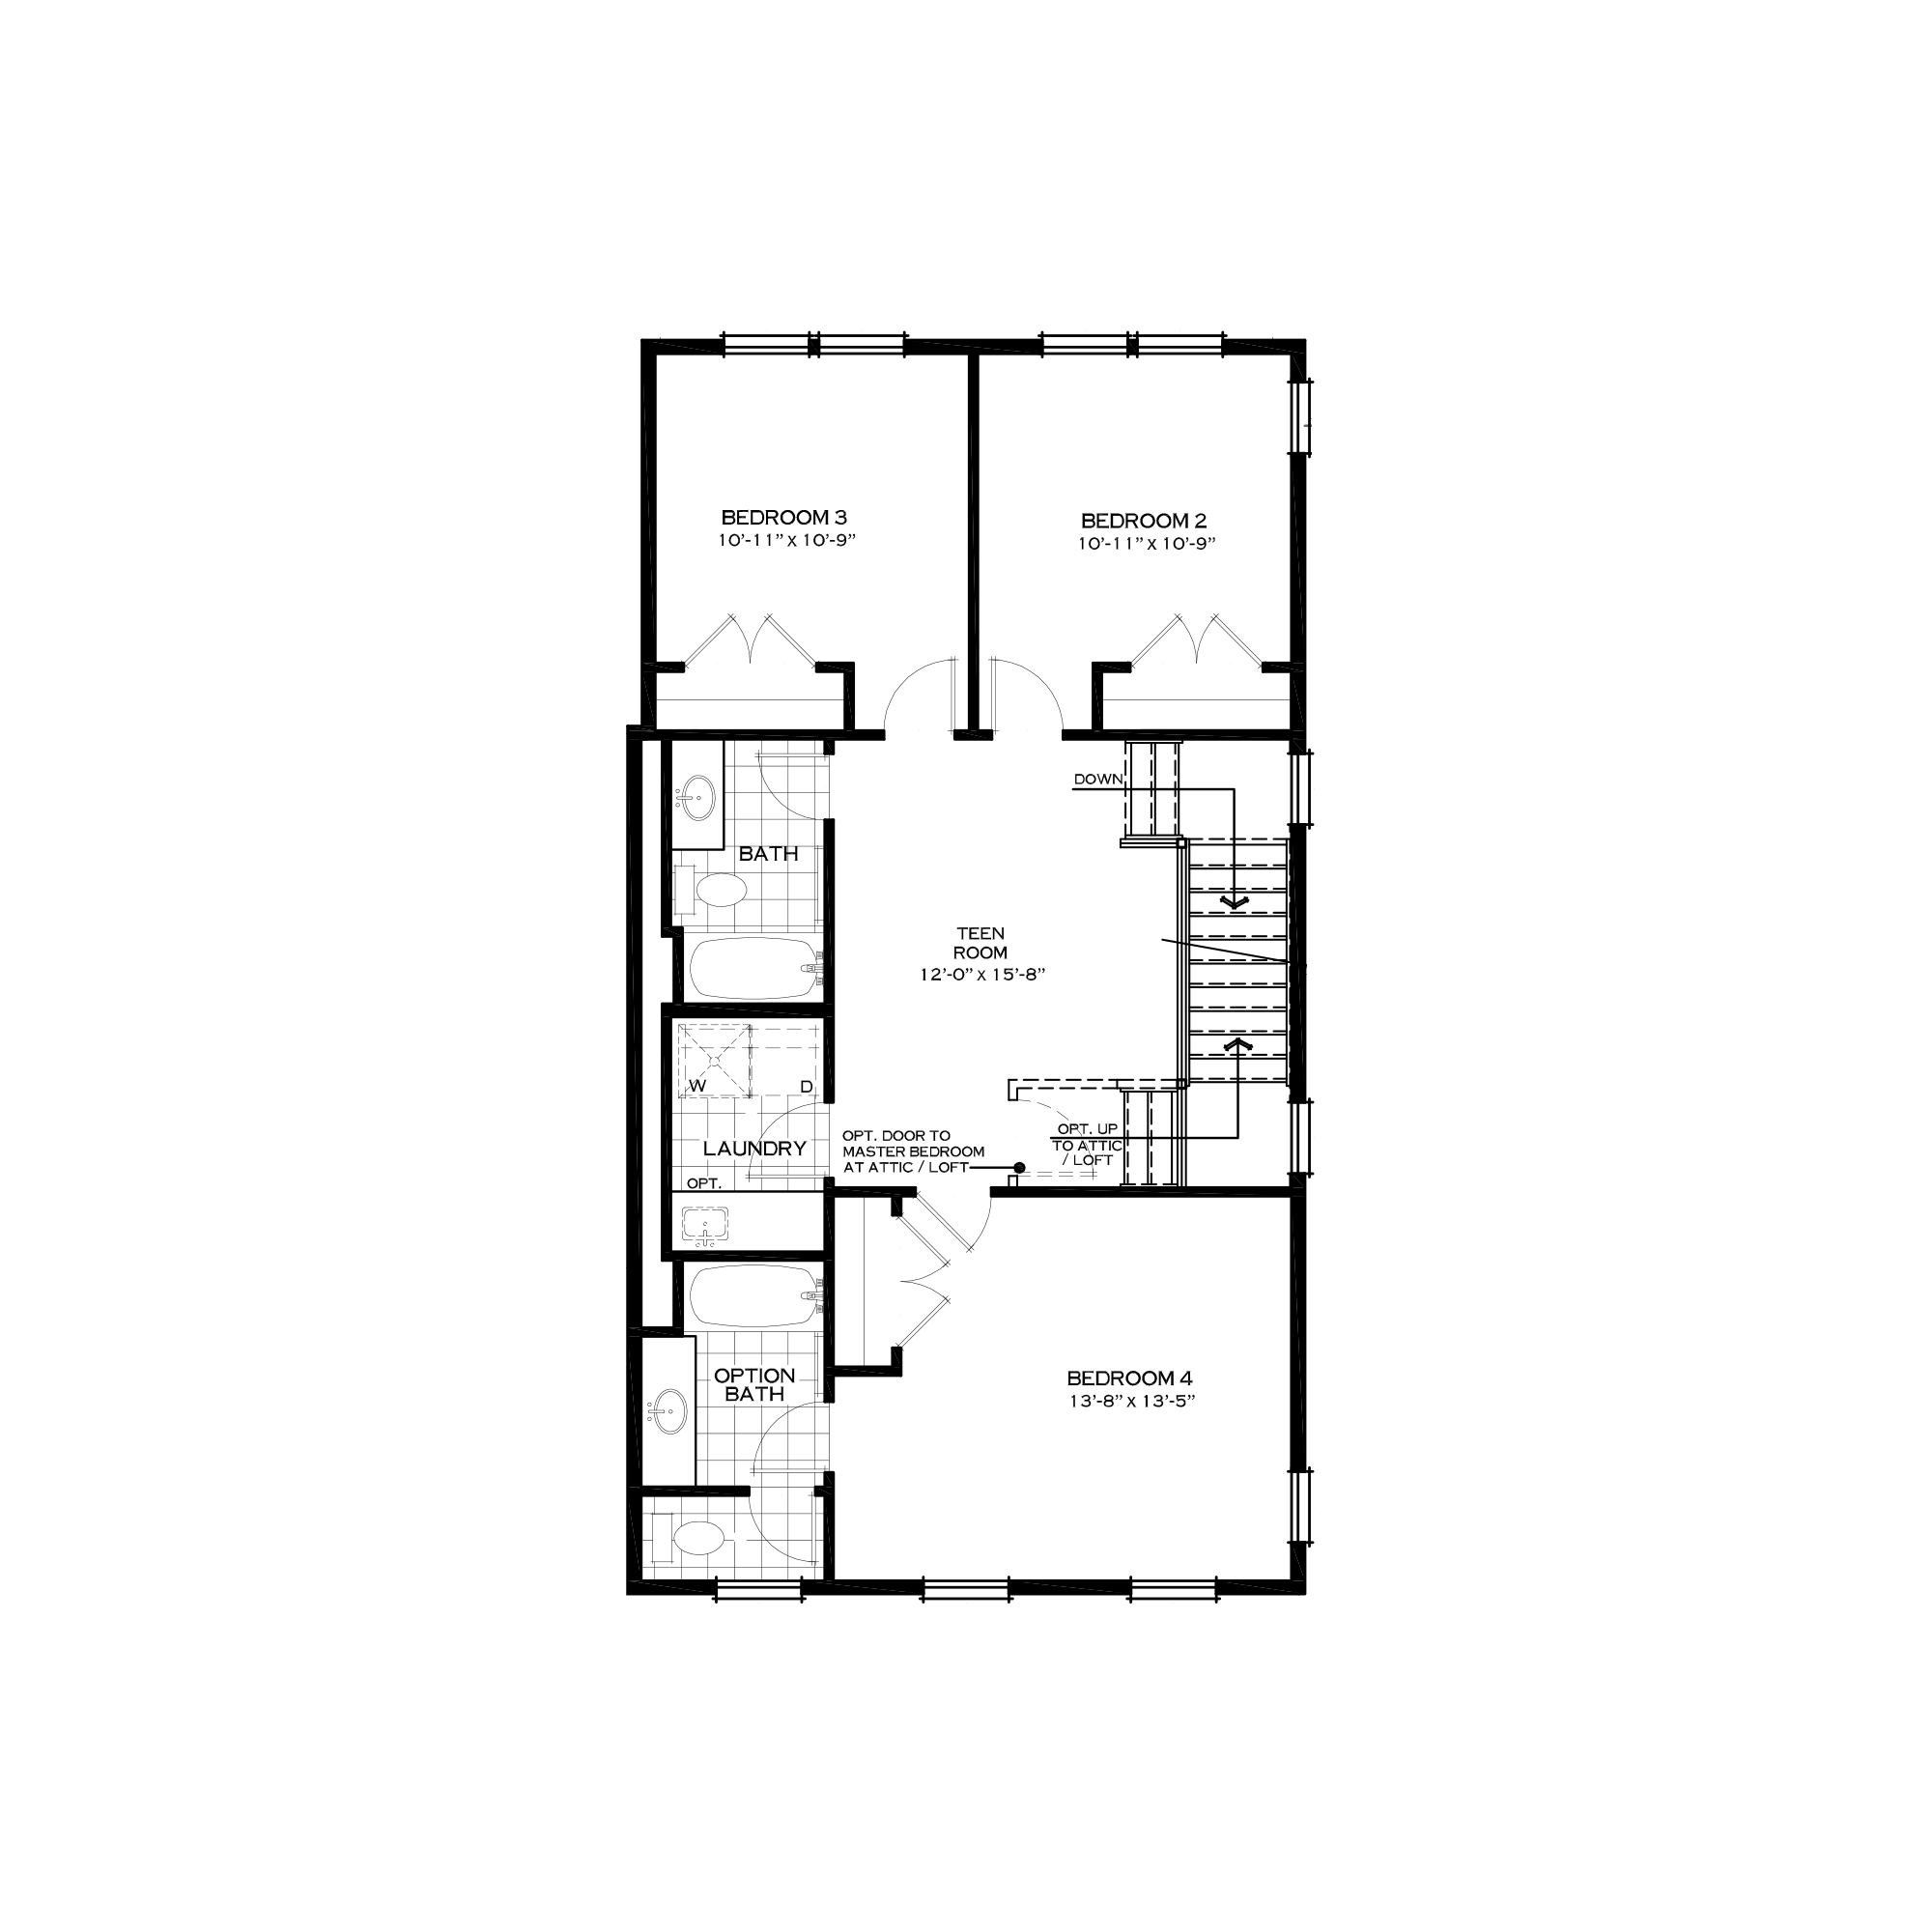 Optional Third Floor with Three Bedrooms